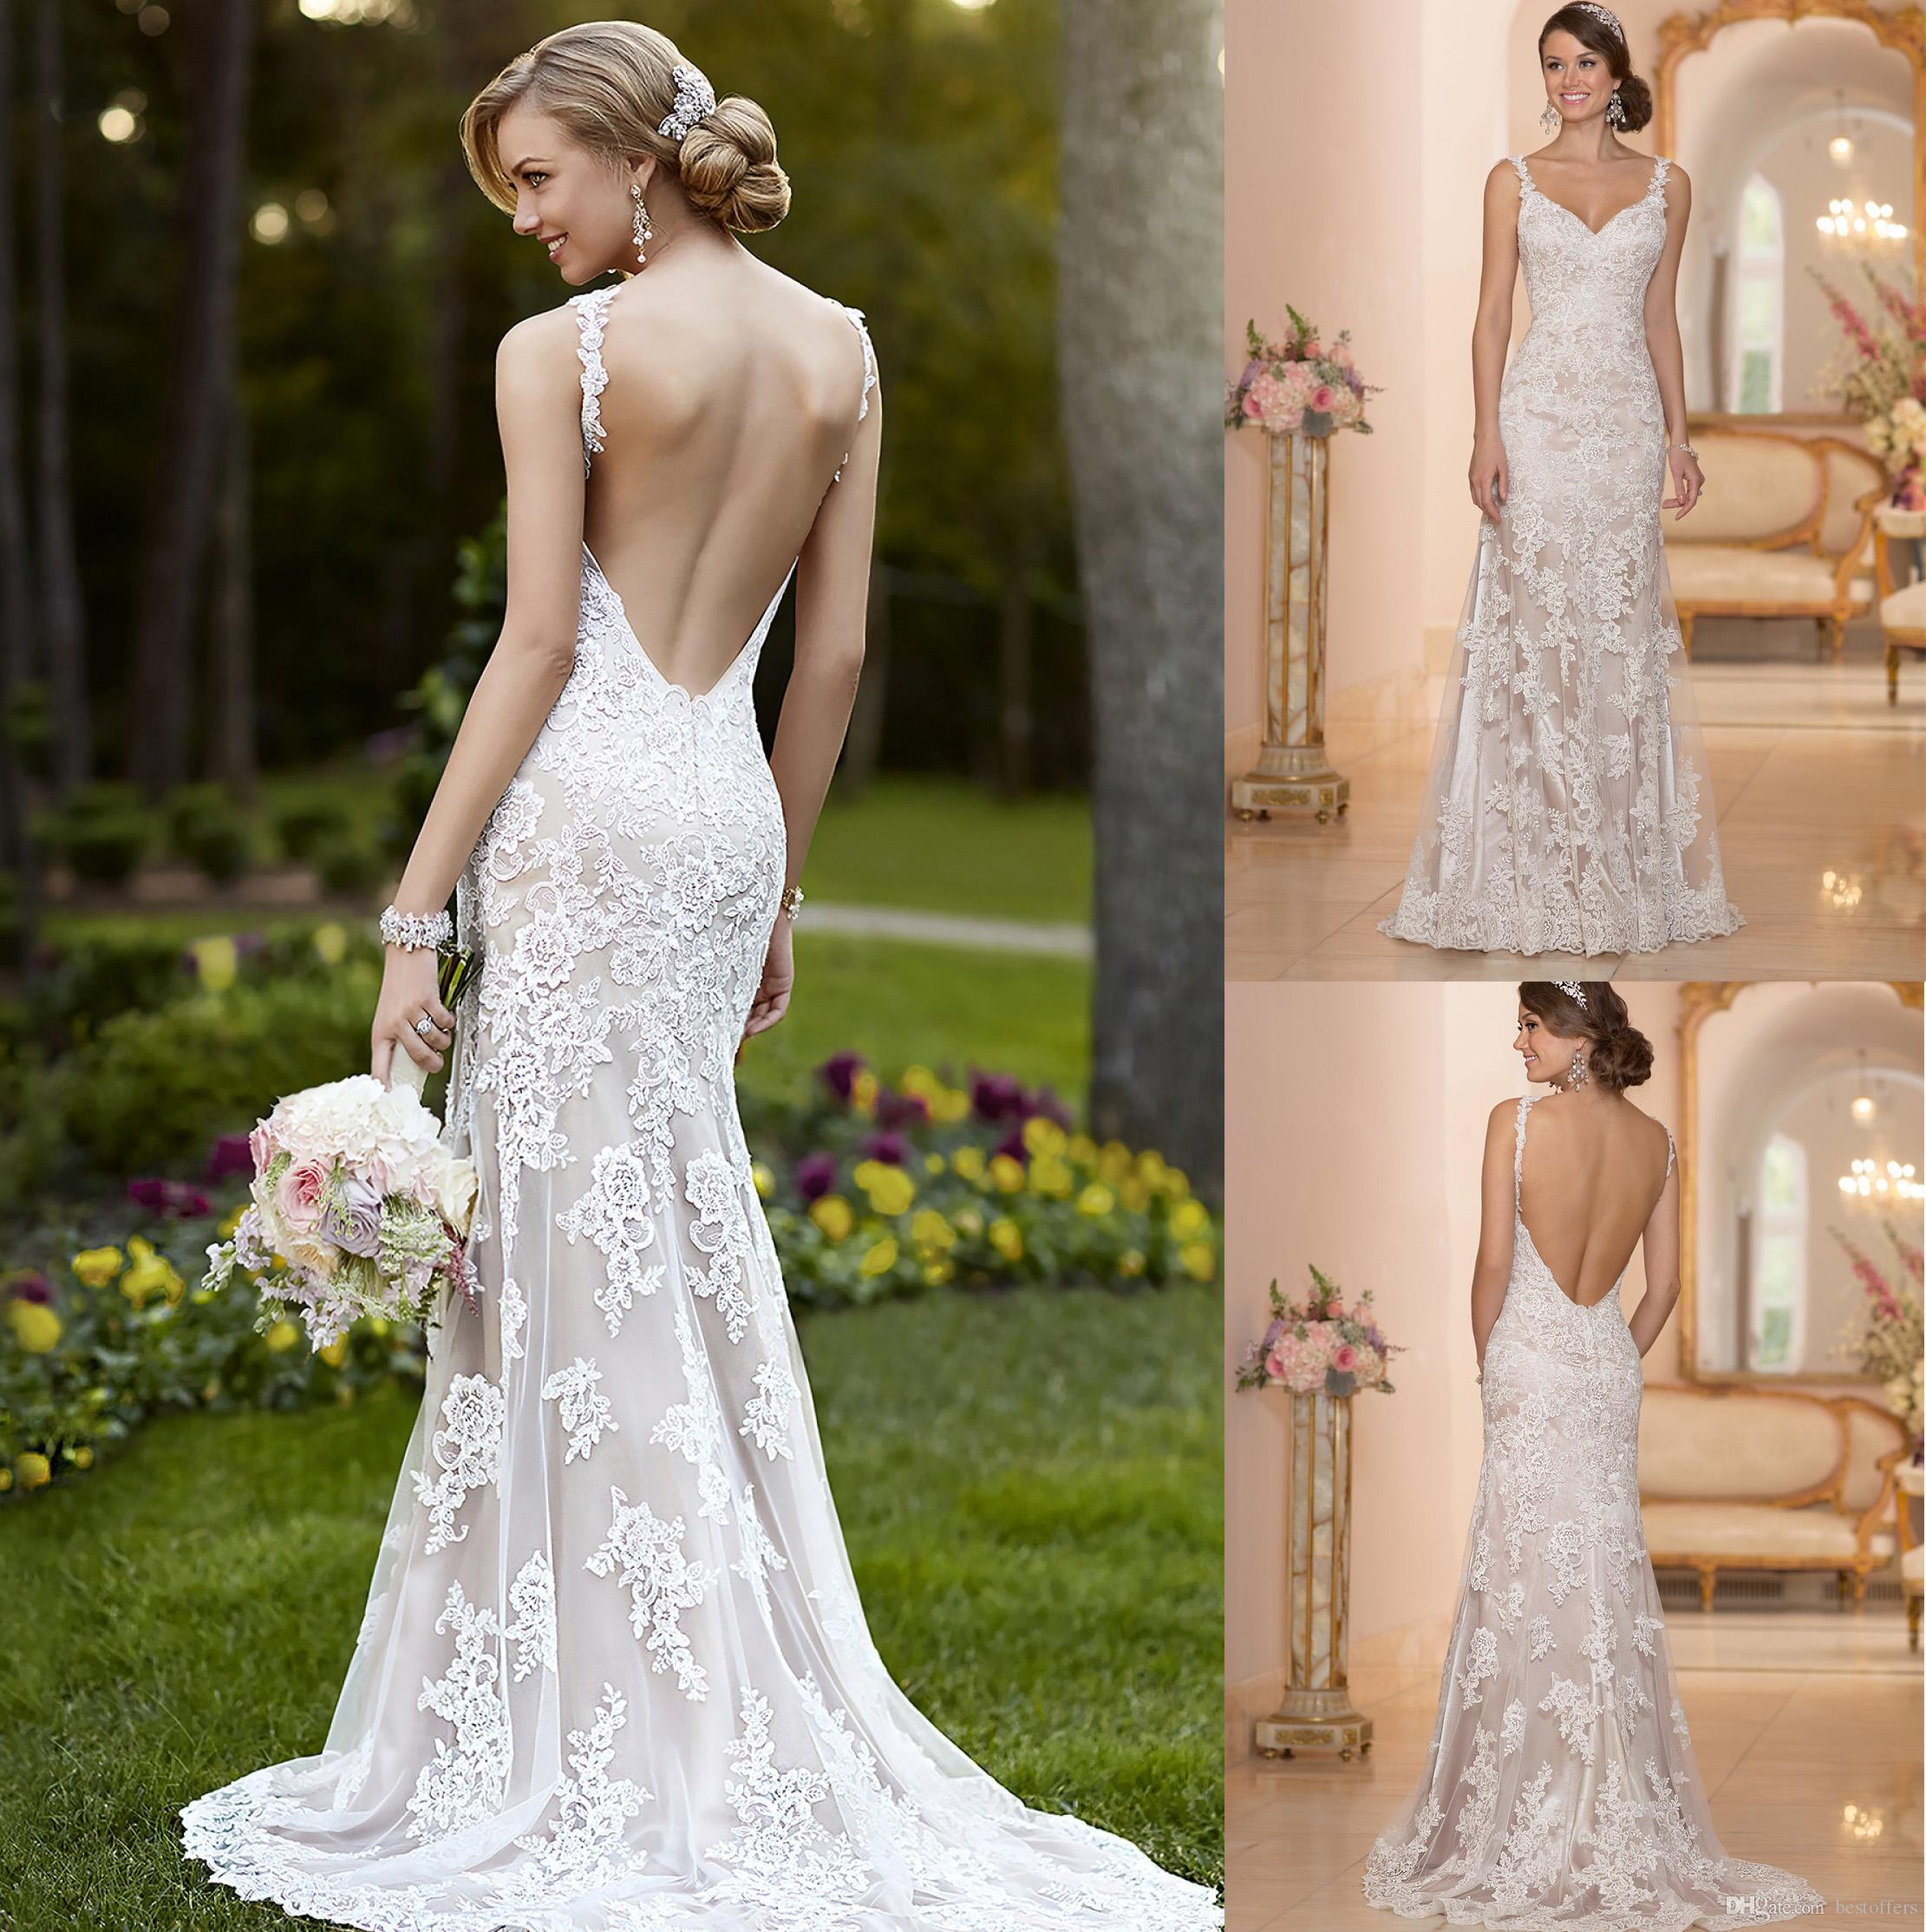 Crocheted Wedding Gown: Custom Made Lace Crochet Wedding Dress Patterns With